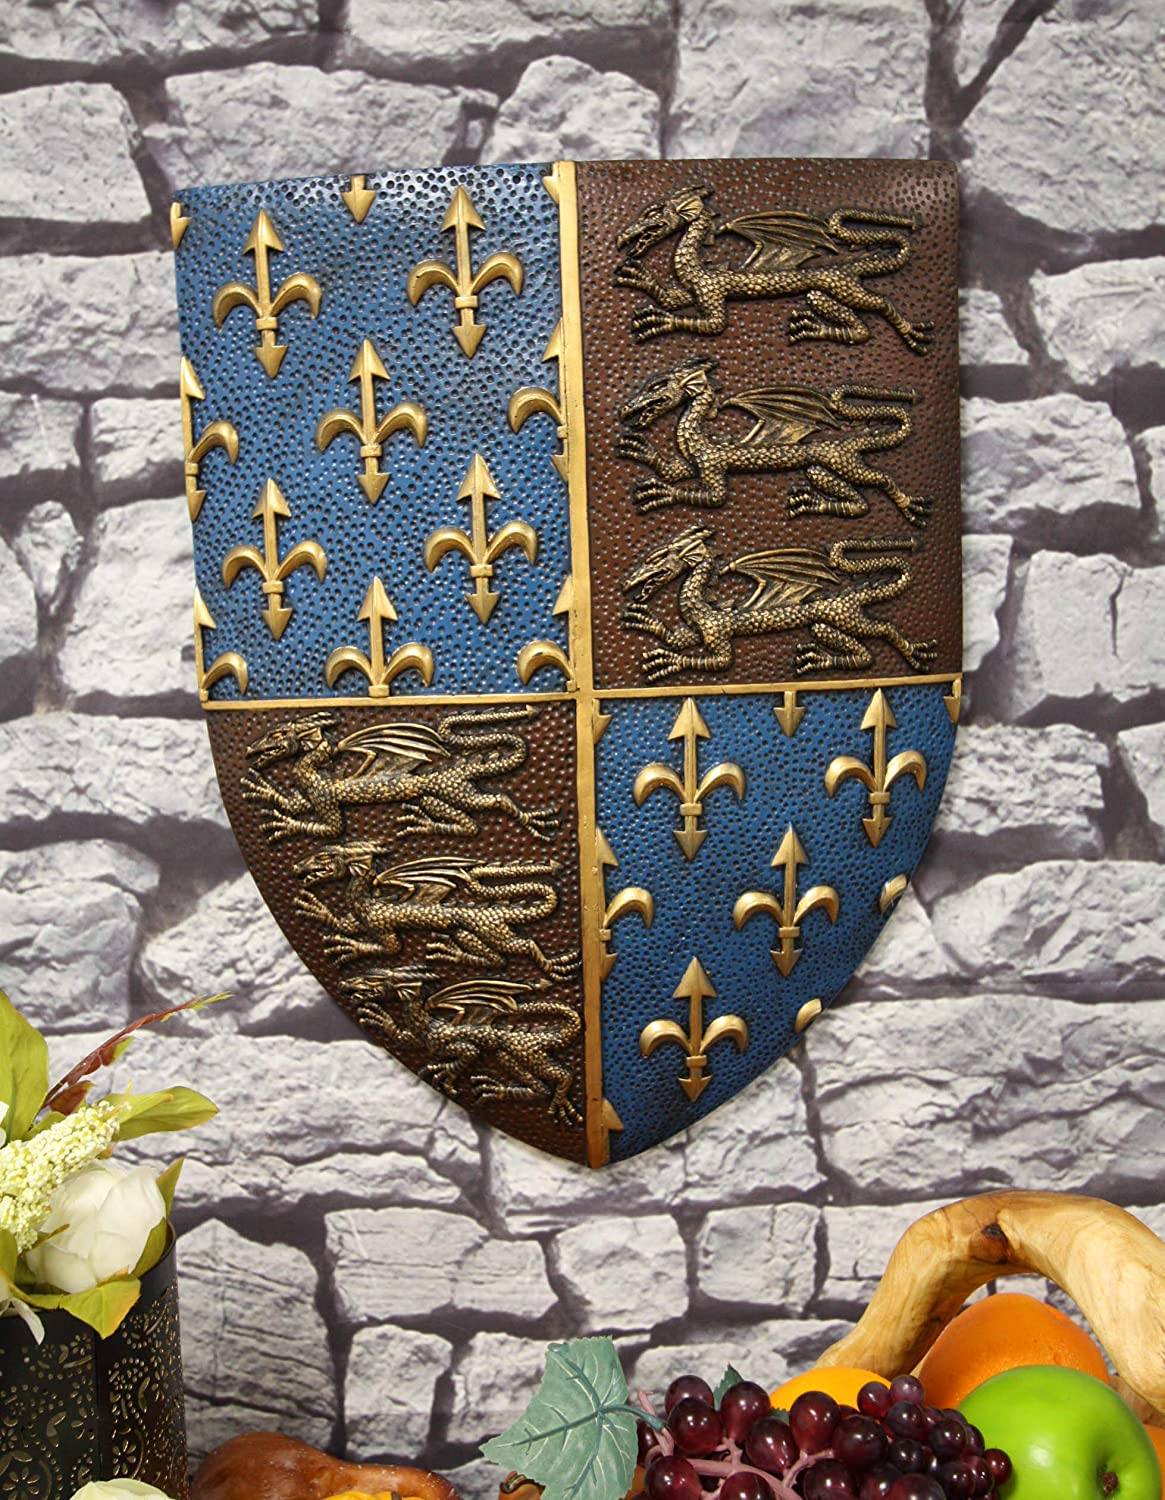 Ebros Gift Large Medieval Kingdom Knight Coat of Arms Le Fleur Symbols And 3 Dragons Royal Shield Wall Decor Plaque In Maroon And Blue Colors 19